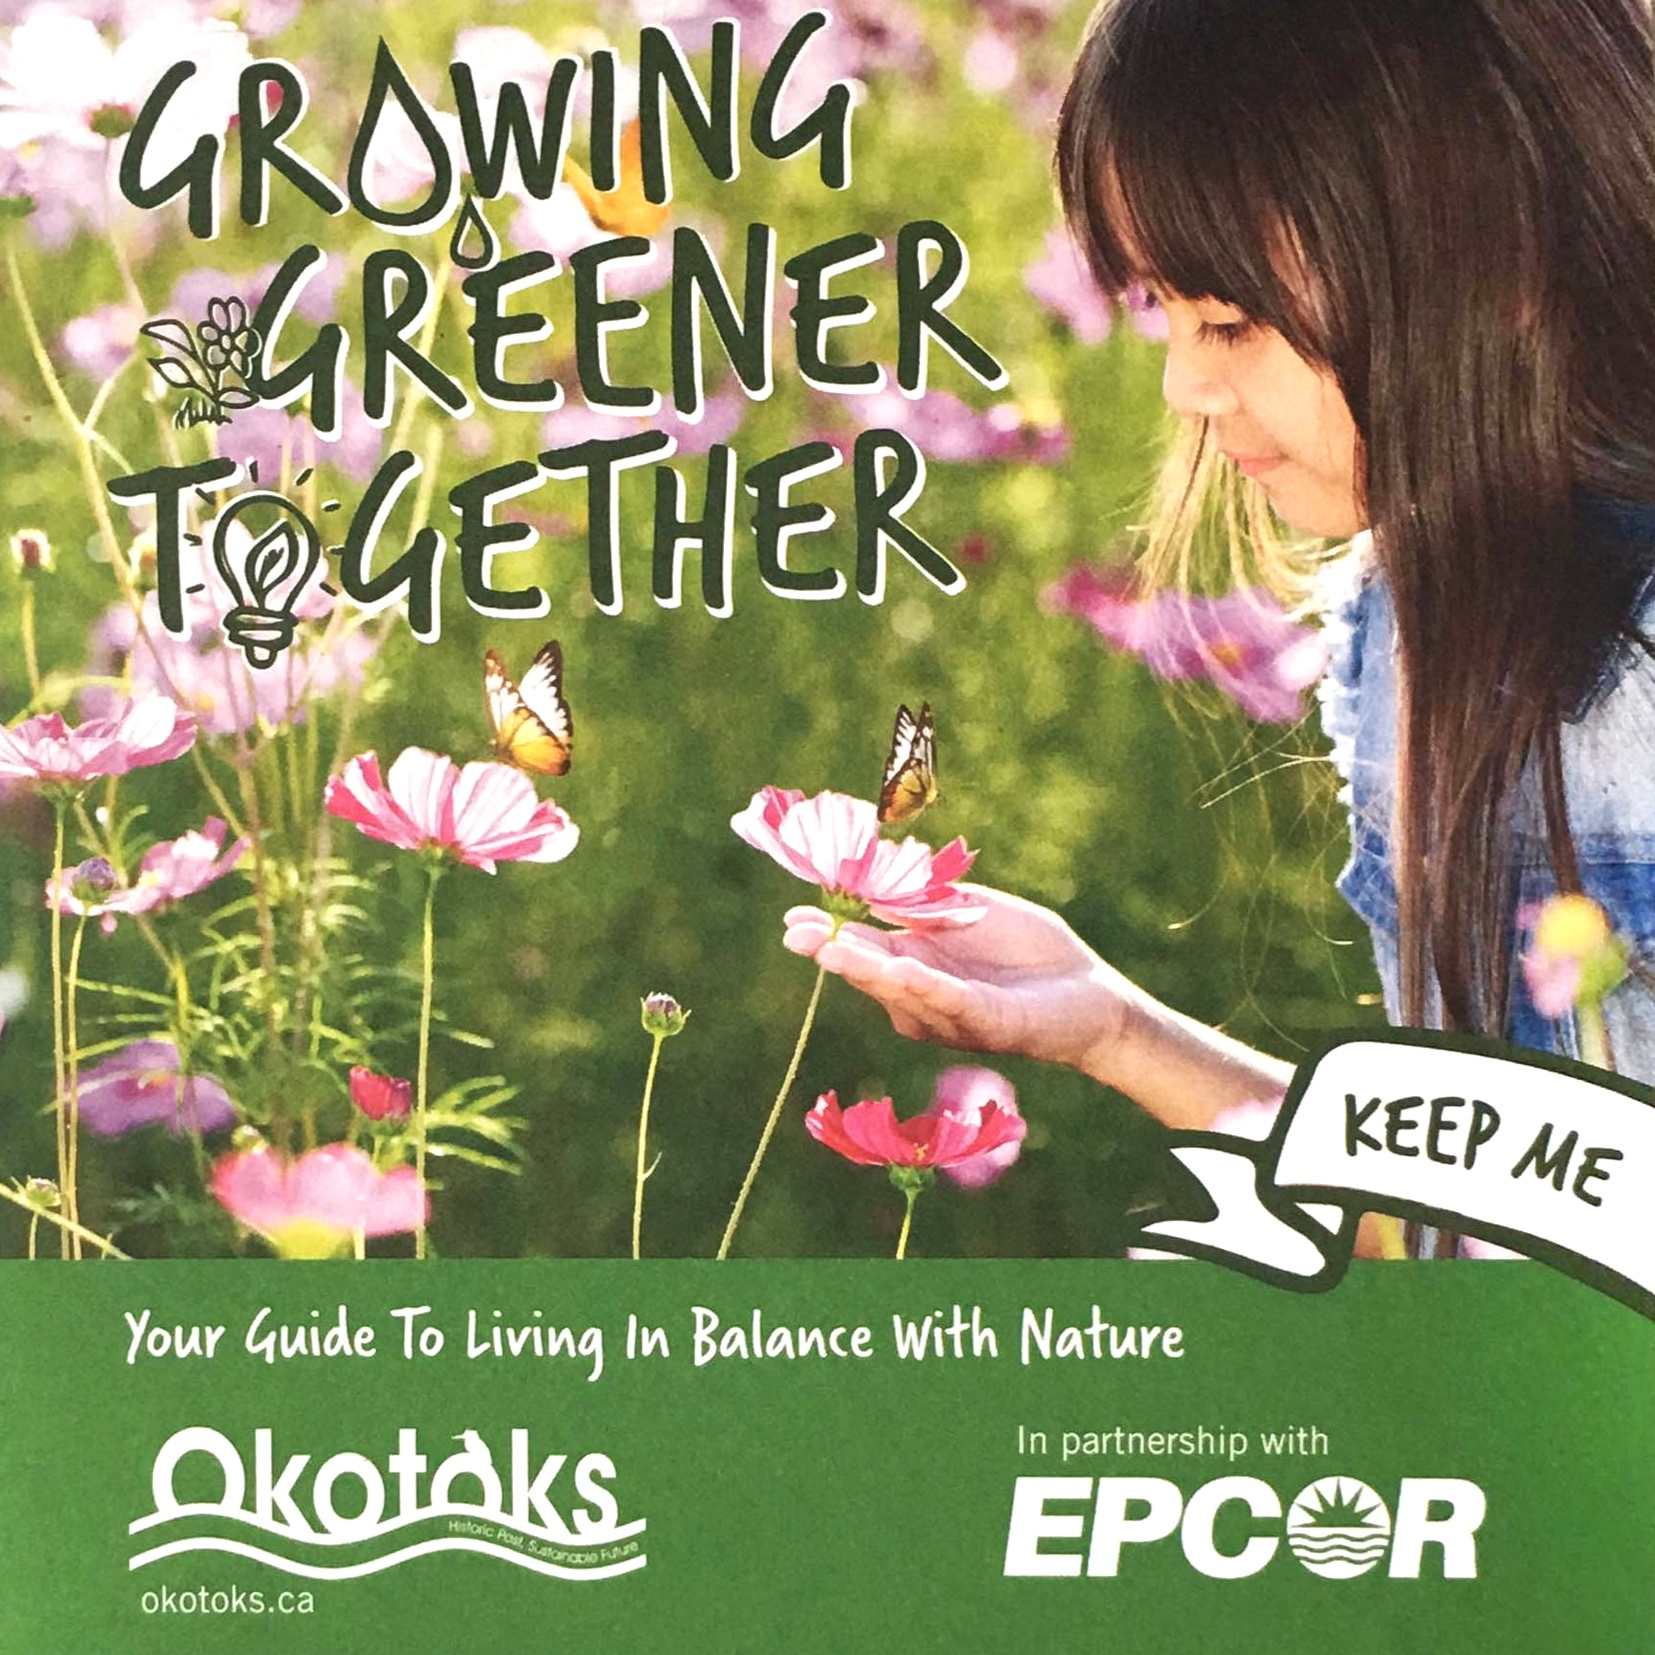 Town of Okotoks - Growing Greener Together